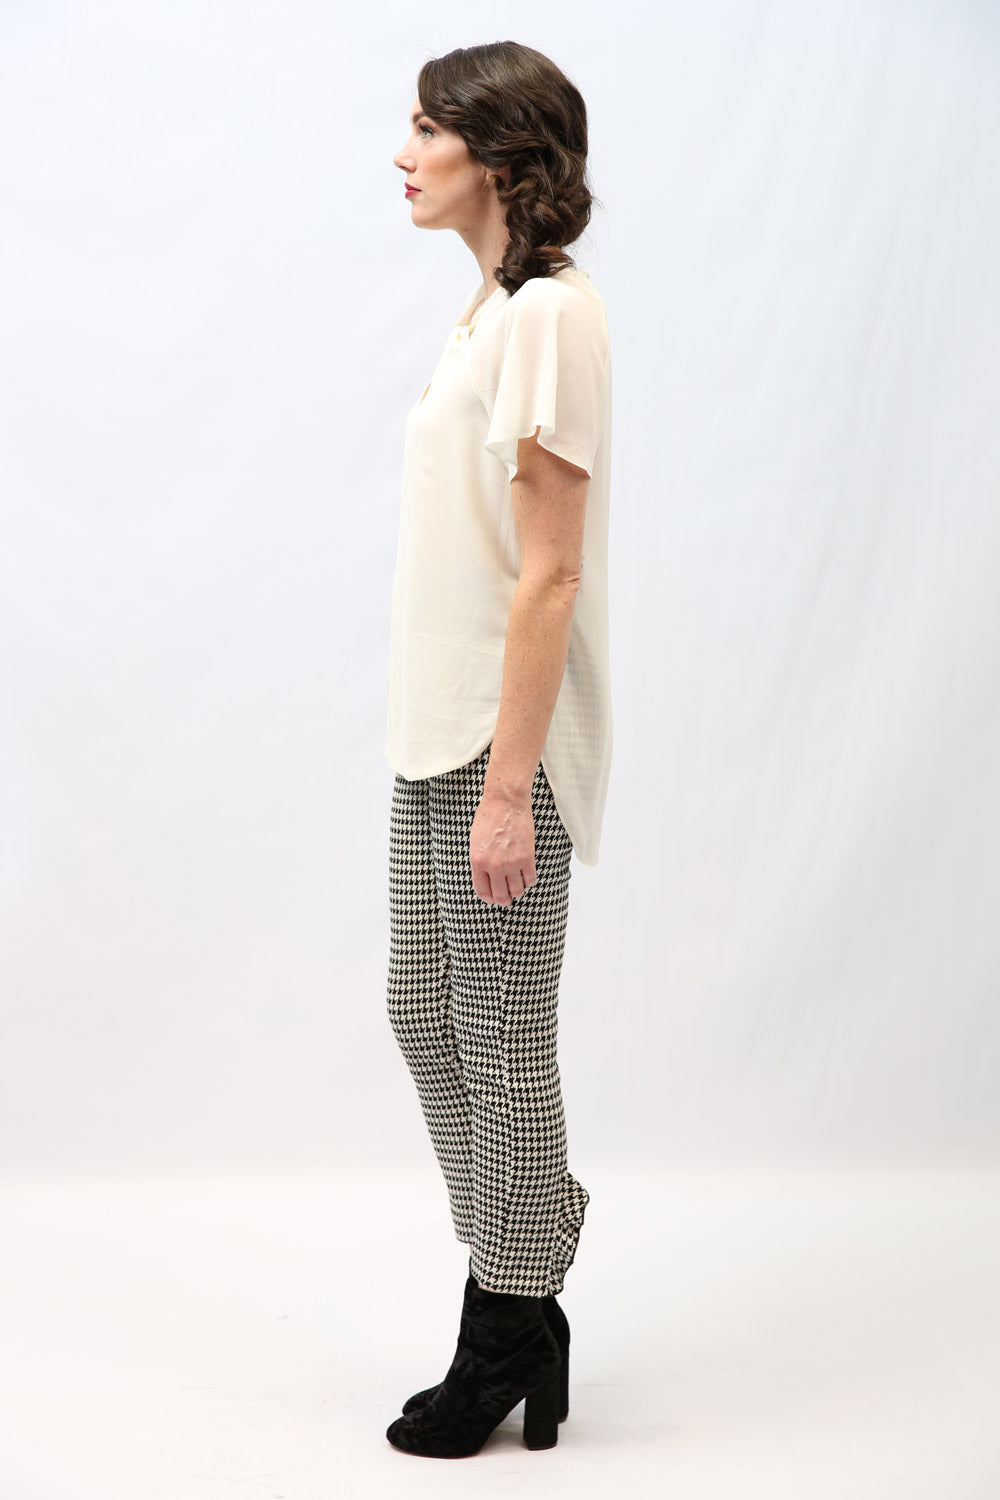 Meera | Pants | New Zealand Designer  | Annah Stretton